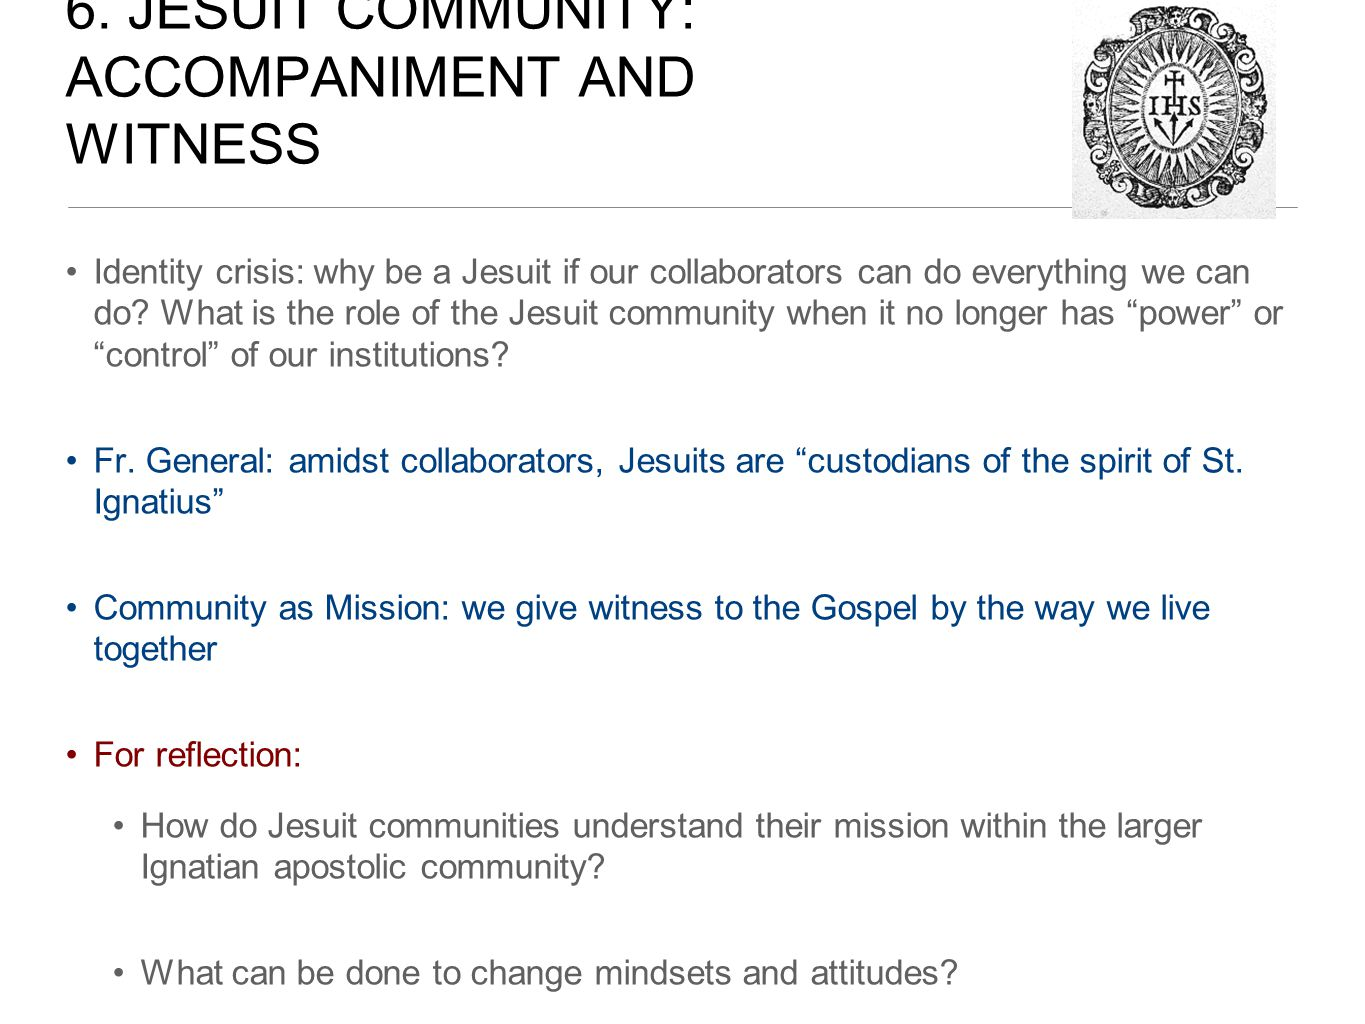 6. JESUIT COMMUNITY: ACCOMPANIMENT AND WITNESS Identity crisis: why be a Jesuit if our collaborators can do everything we can do? What is the role of